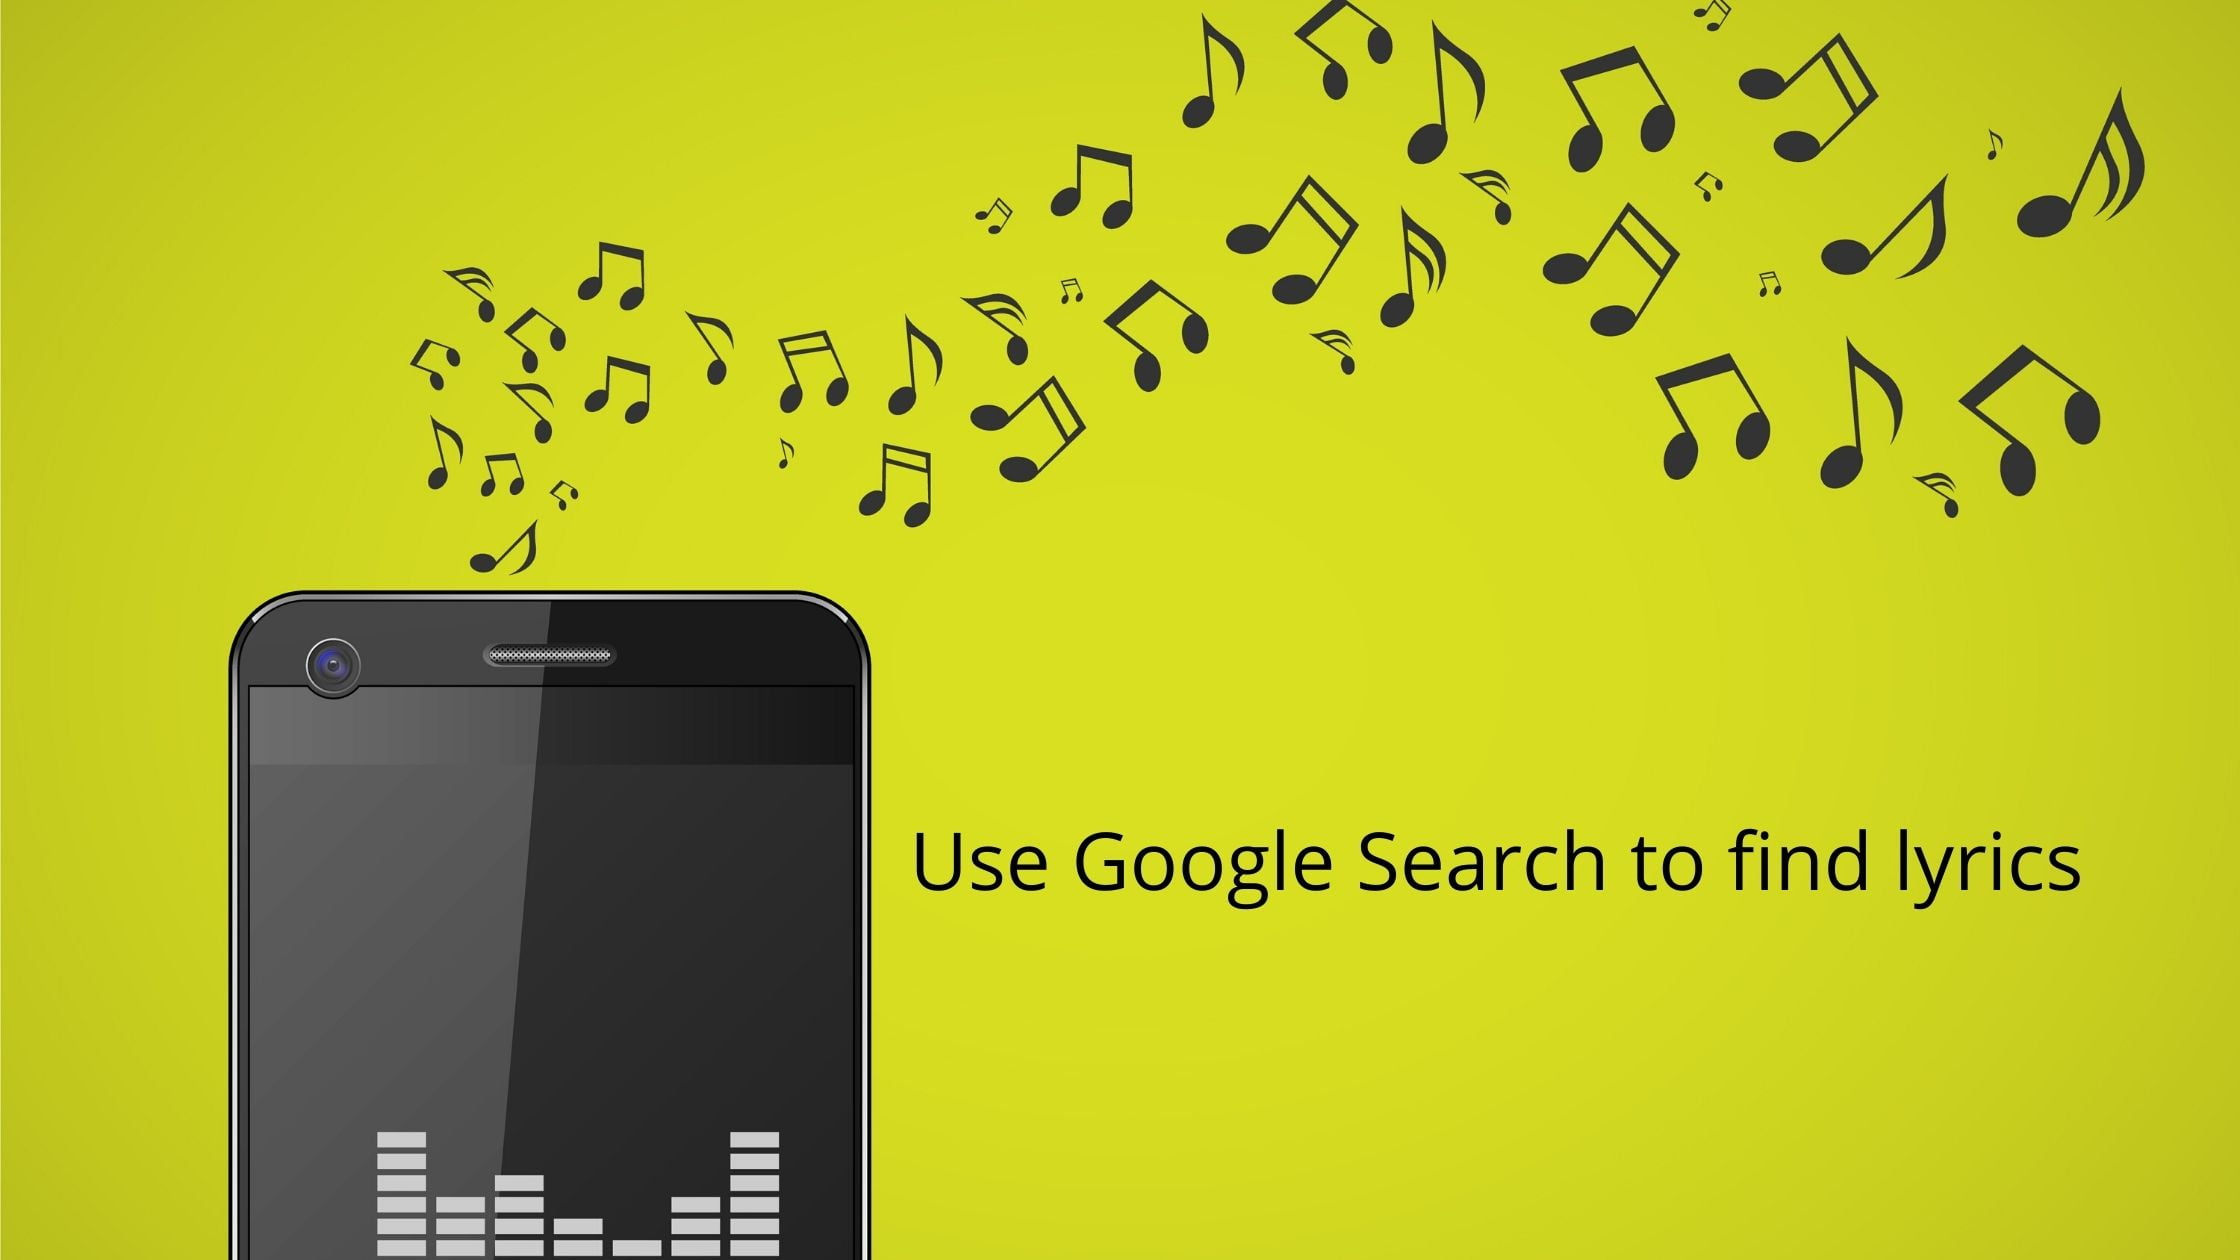 music notes and lyrics using Google search